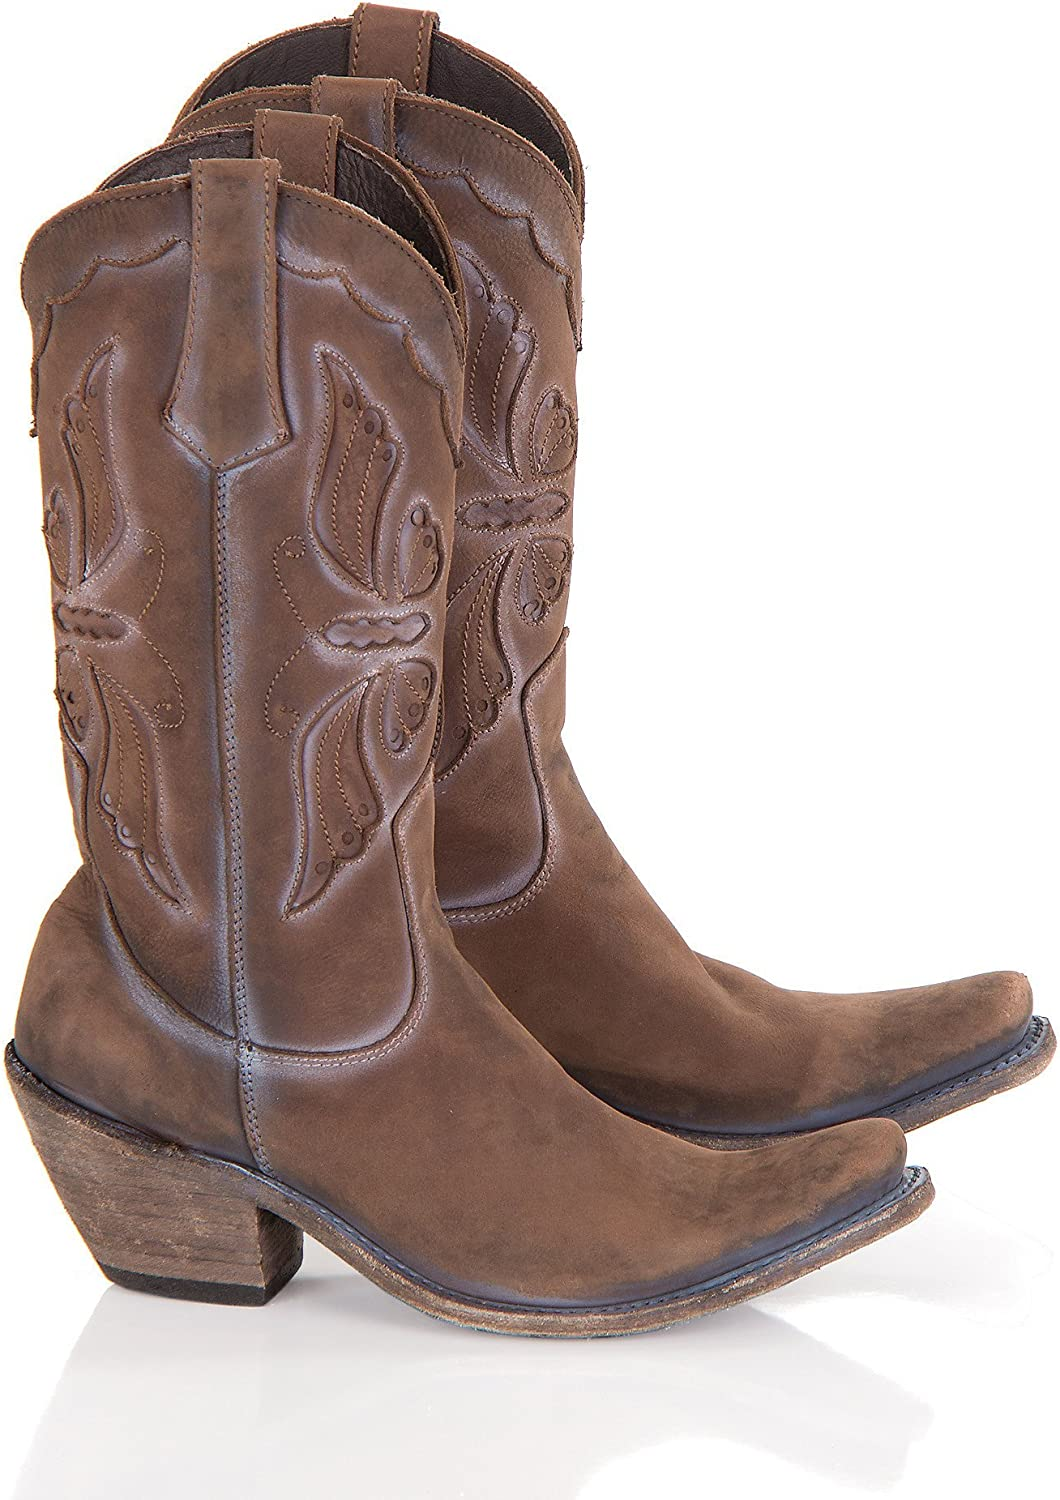 LIBERTY BLACK Women's Butterfly Distressed Leather Cowboy Boots